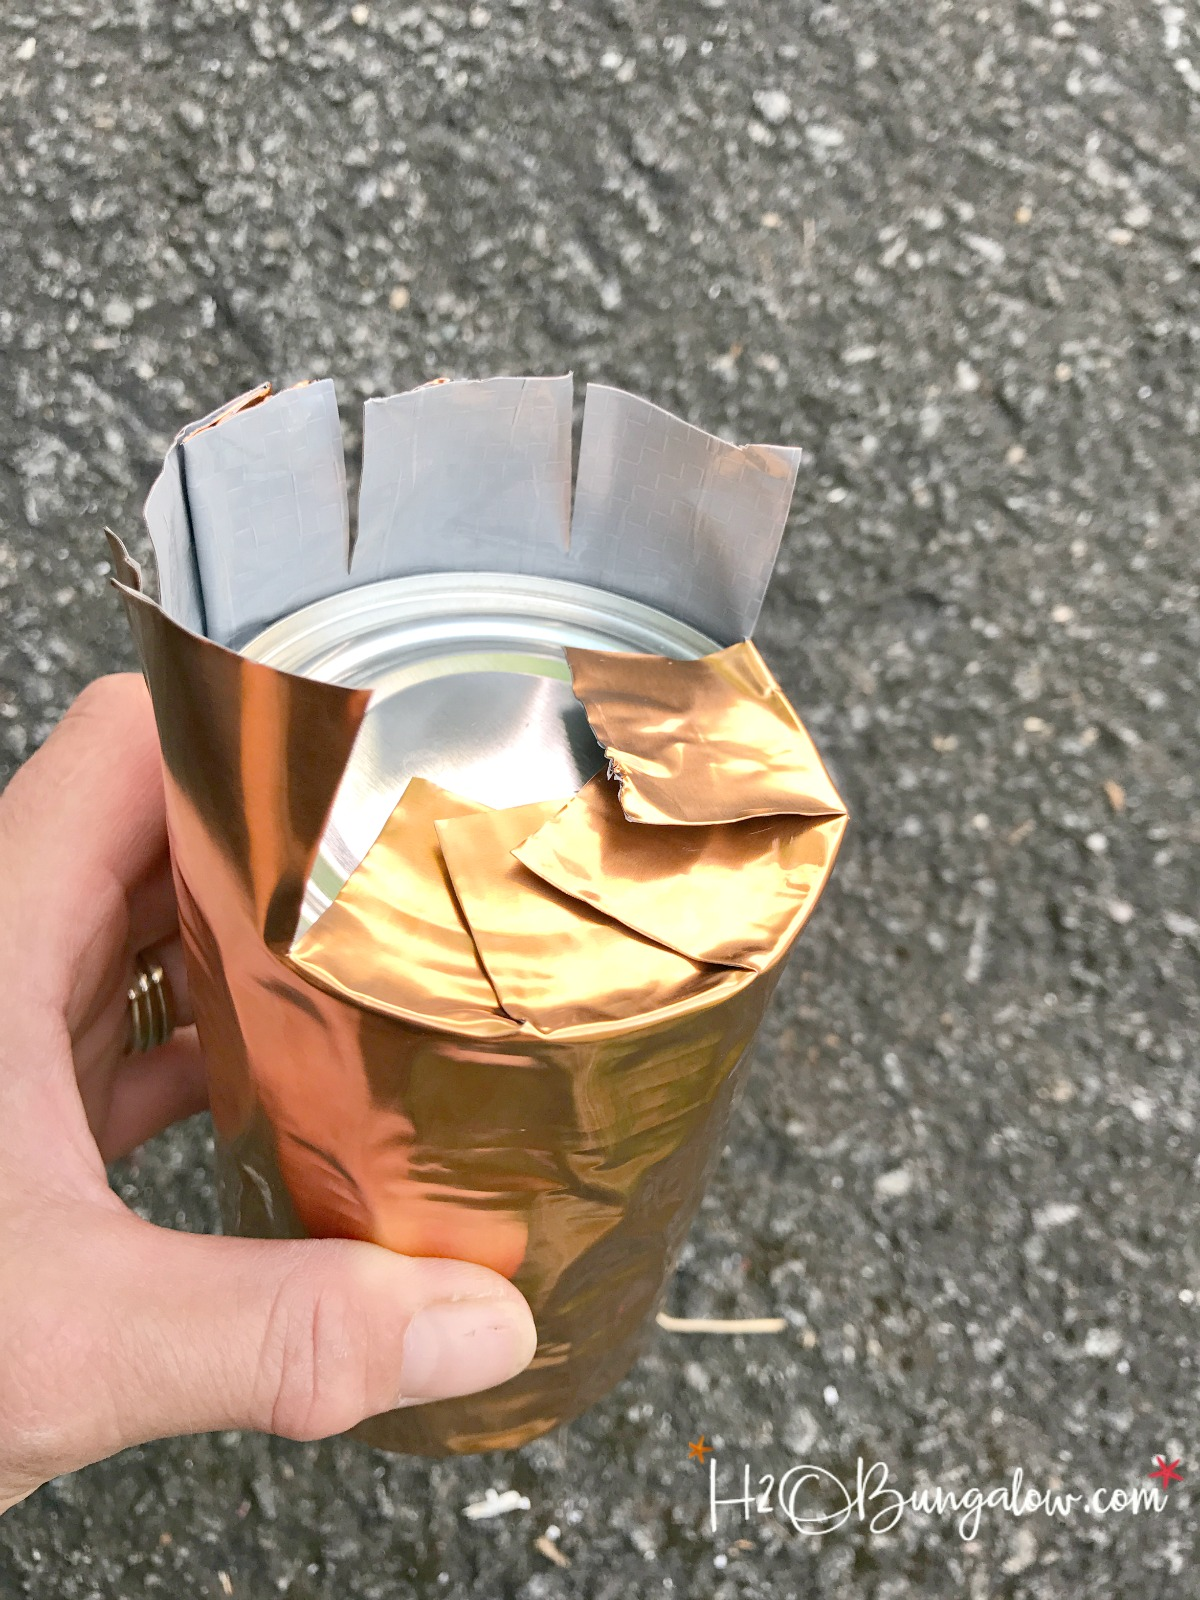 Diy Copper Tin Can Candle Holders H2obungalow